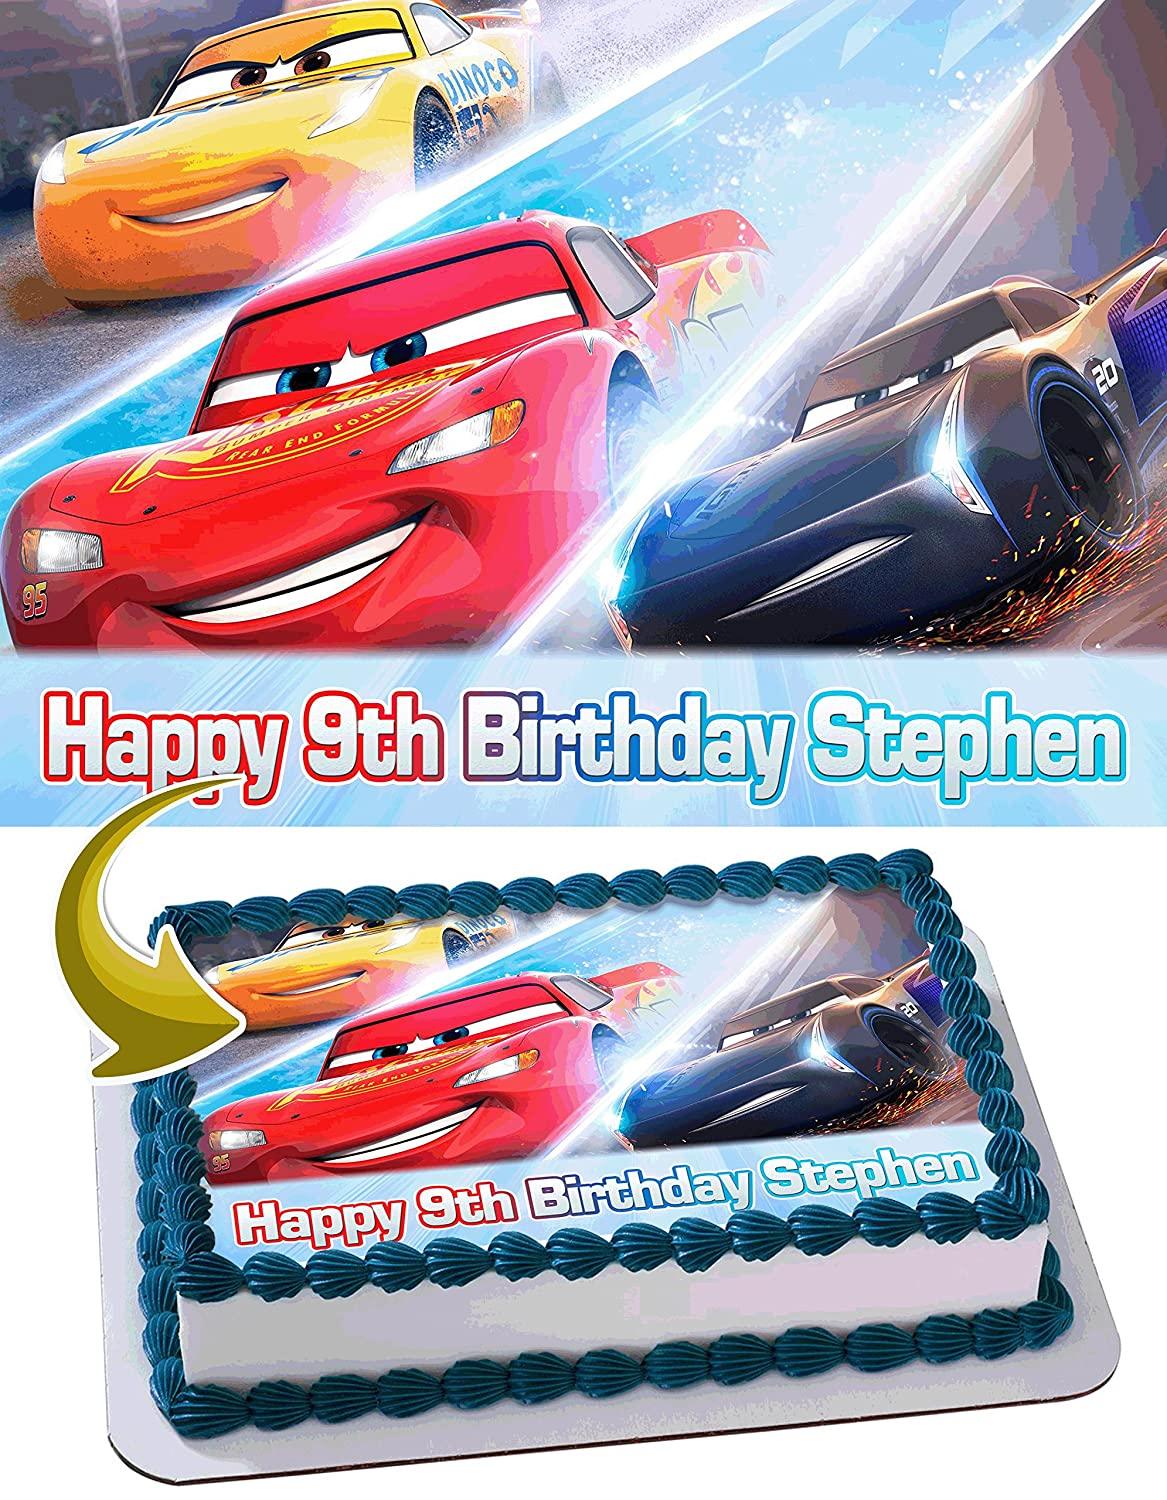 Cars 3 Disney Pixar Personalized Cake Toppers Icing Sugar Paper A4 Sheet Edible Frosting Photo Birthday Topper 1 4 Best Quality Image